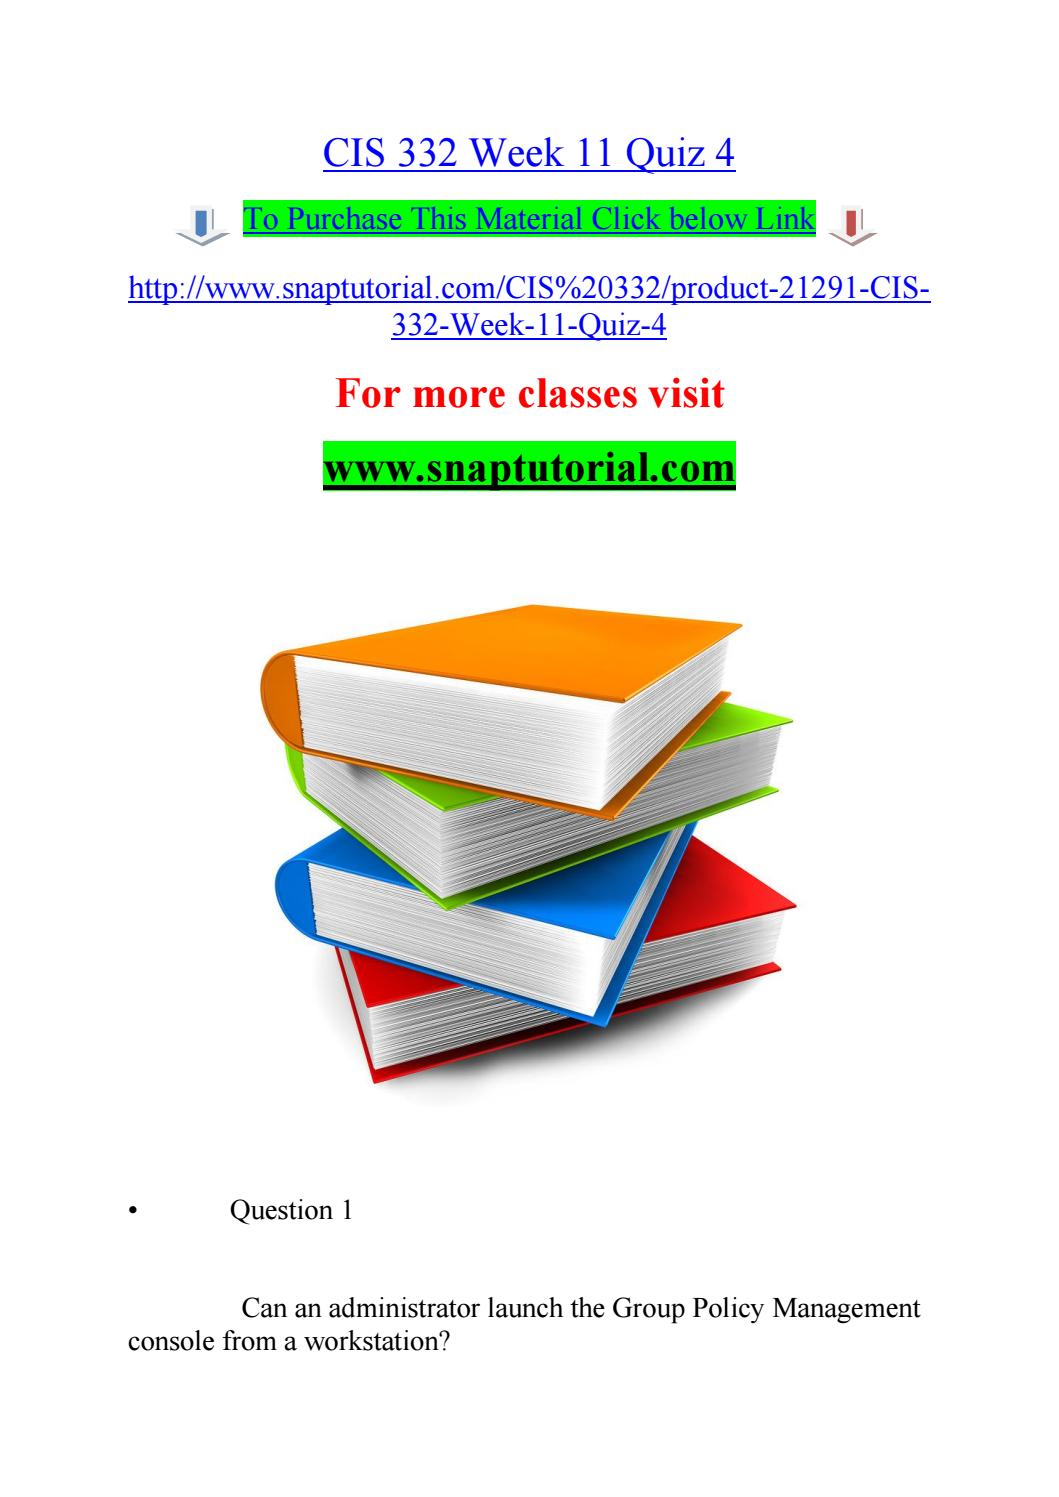 Cis 332 week 11 quiz 4 / snaptutorial com by aleperoe - issuu